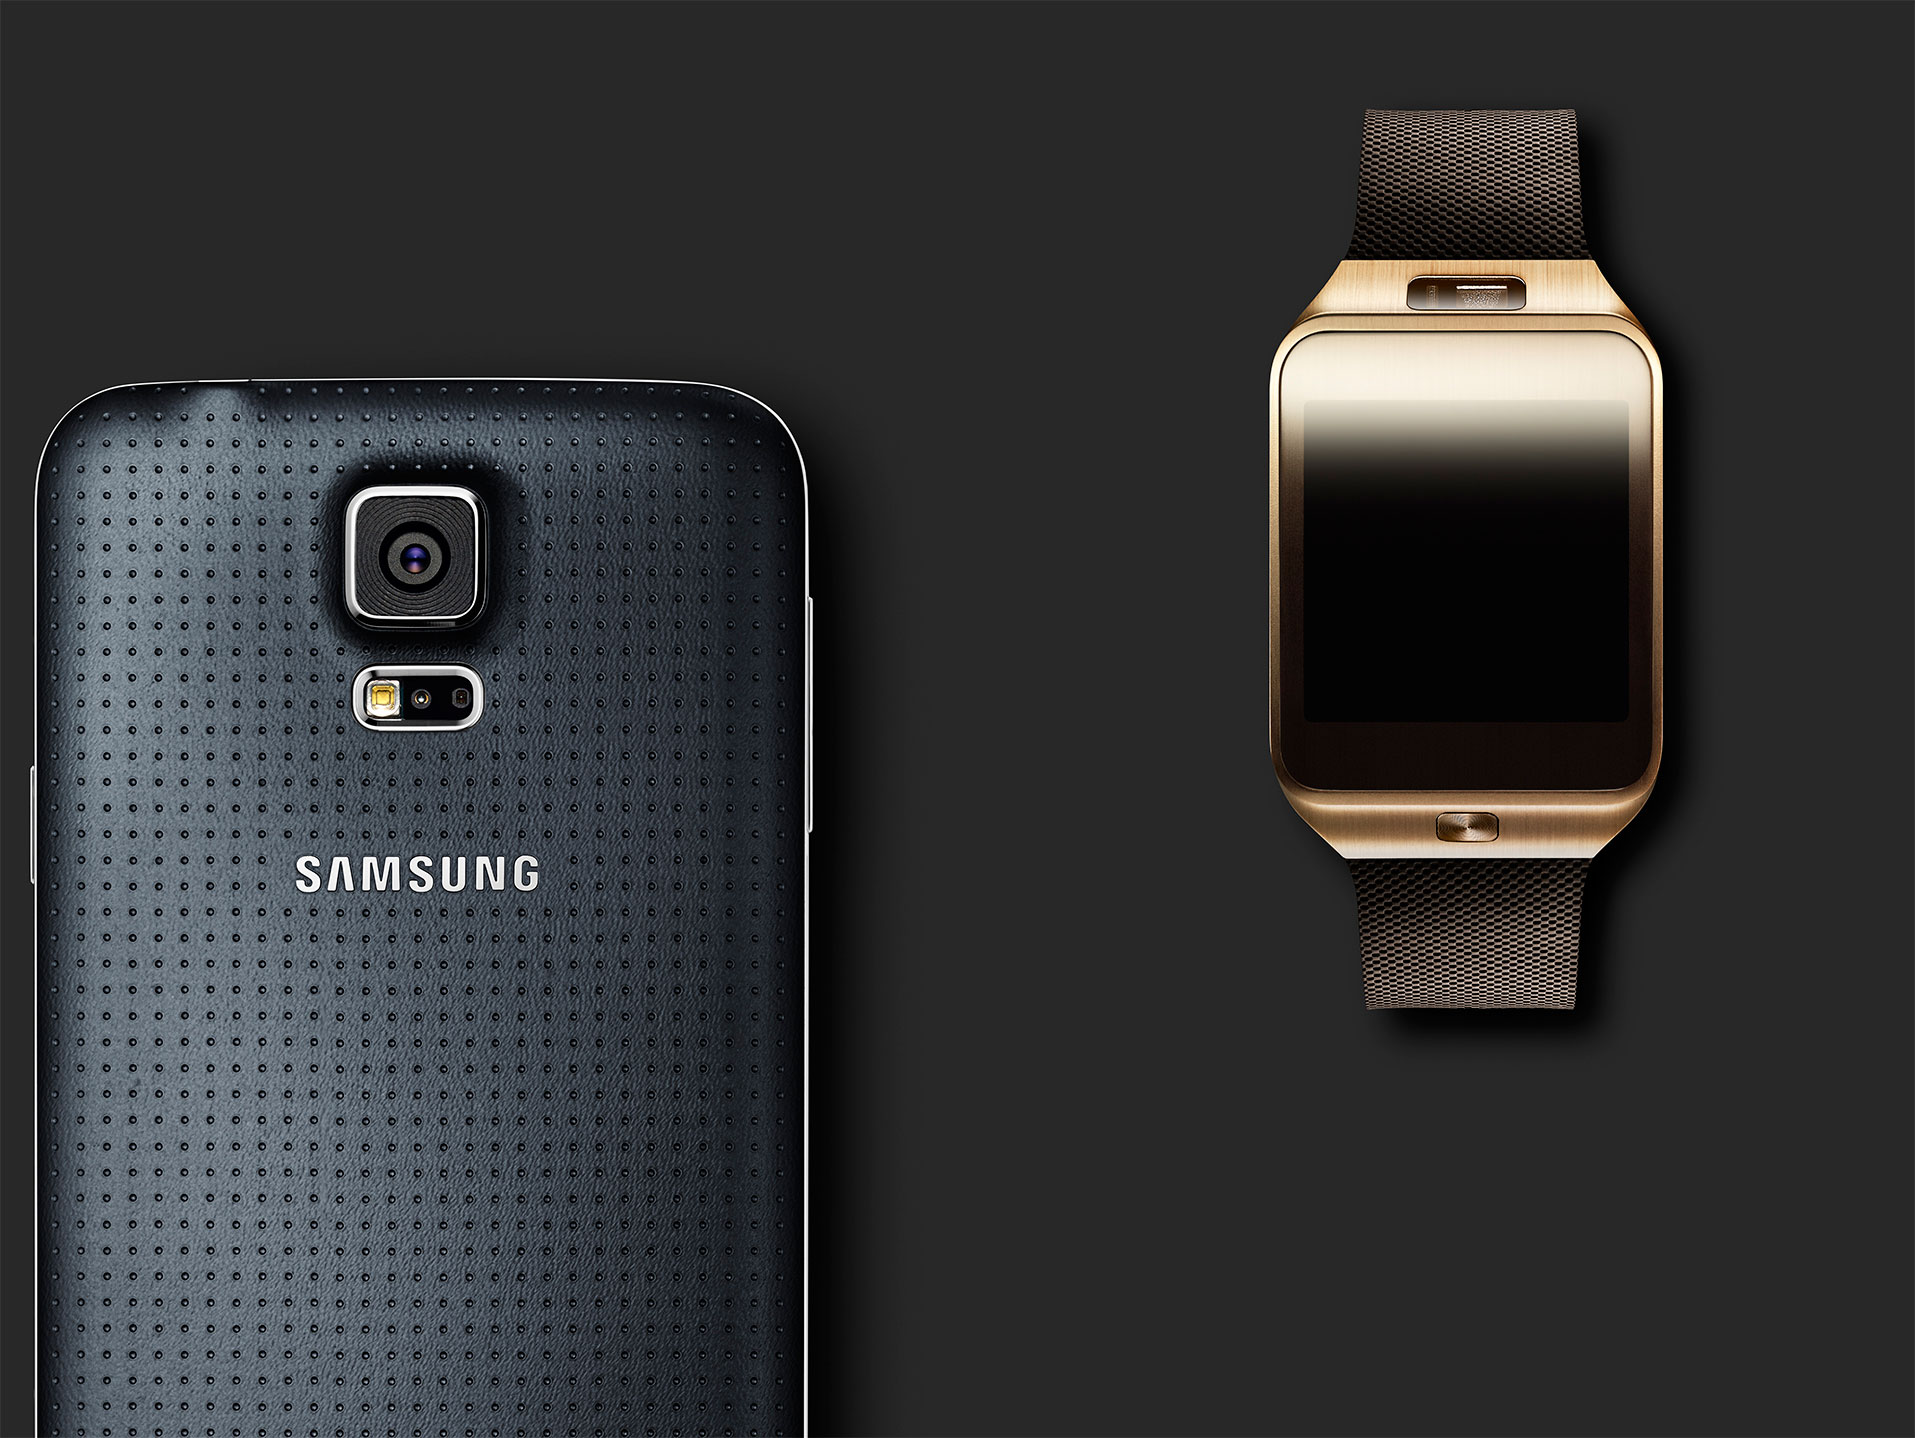 how to make your phone ring longer on samsung s5